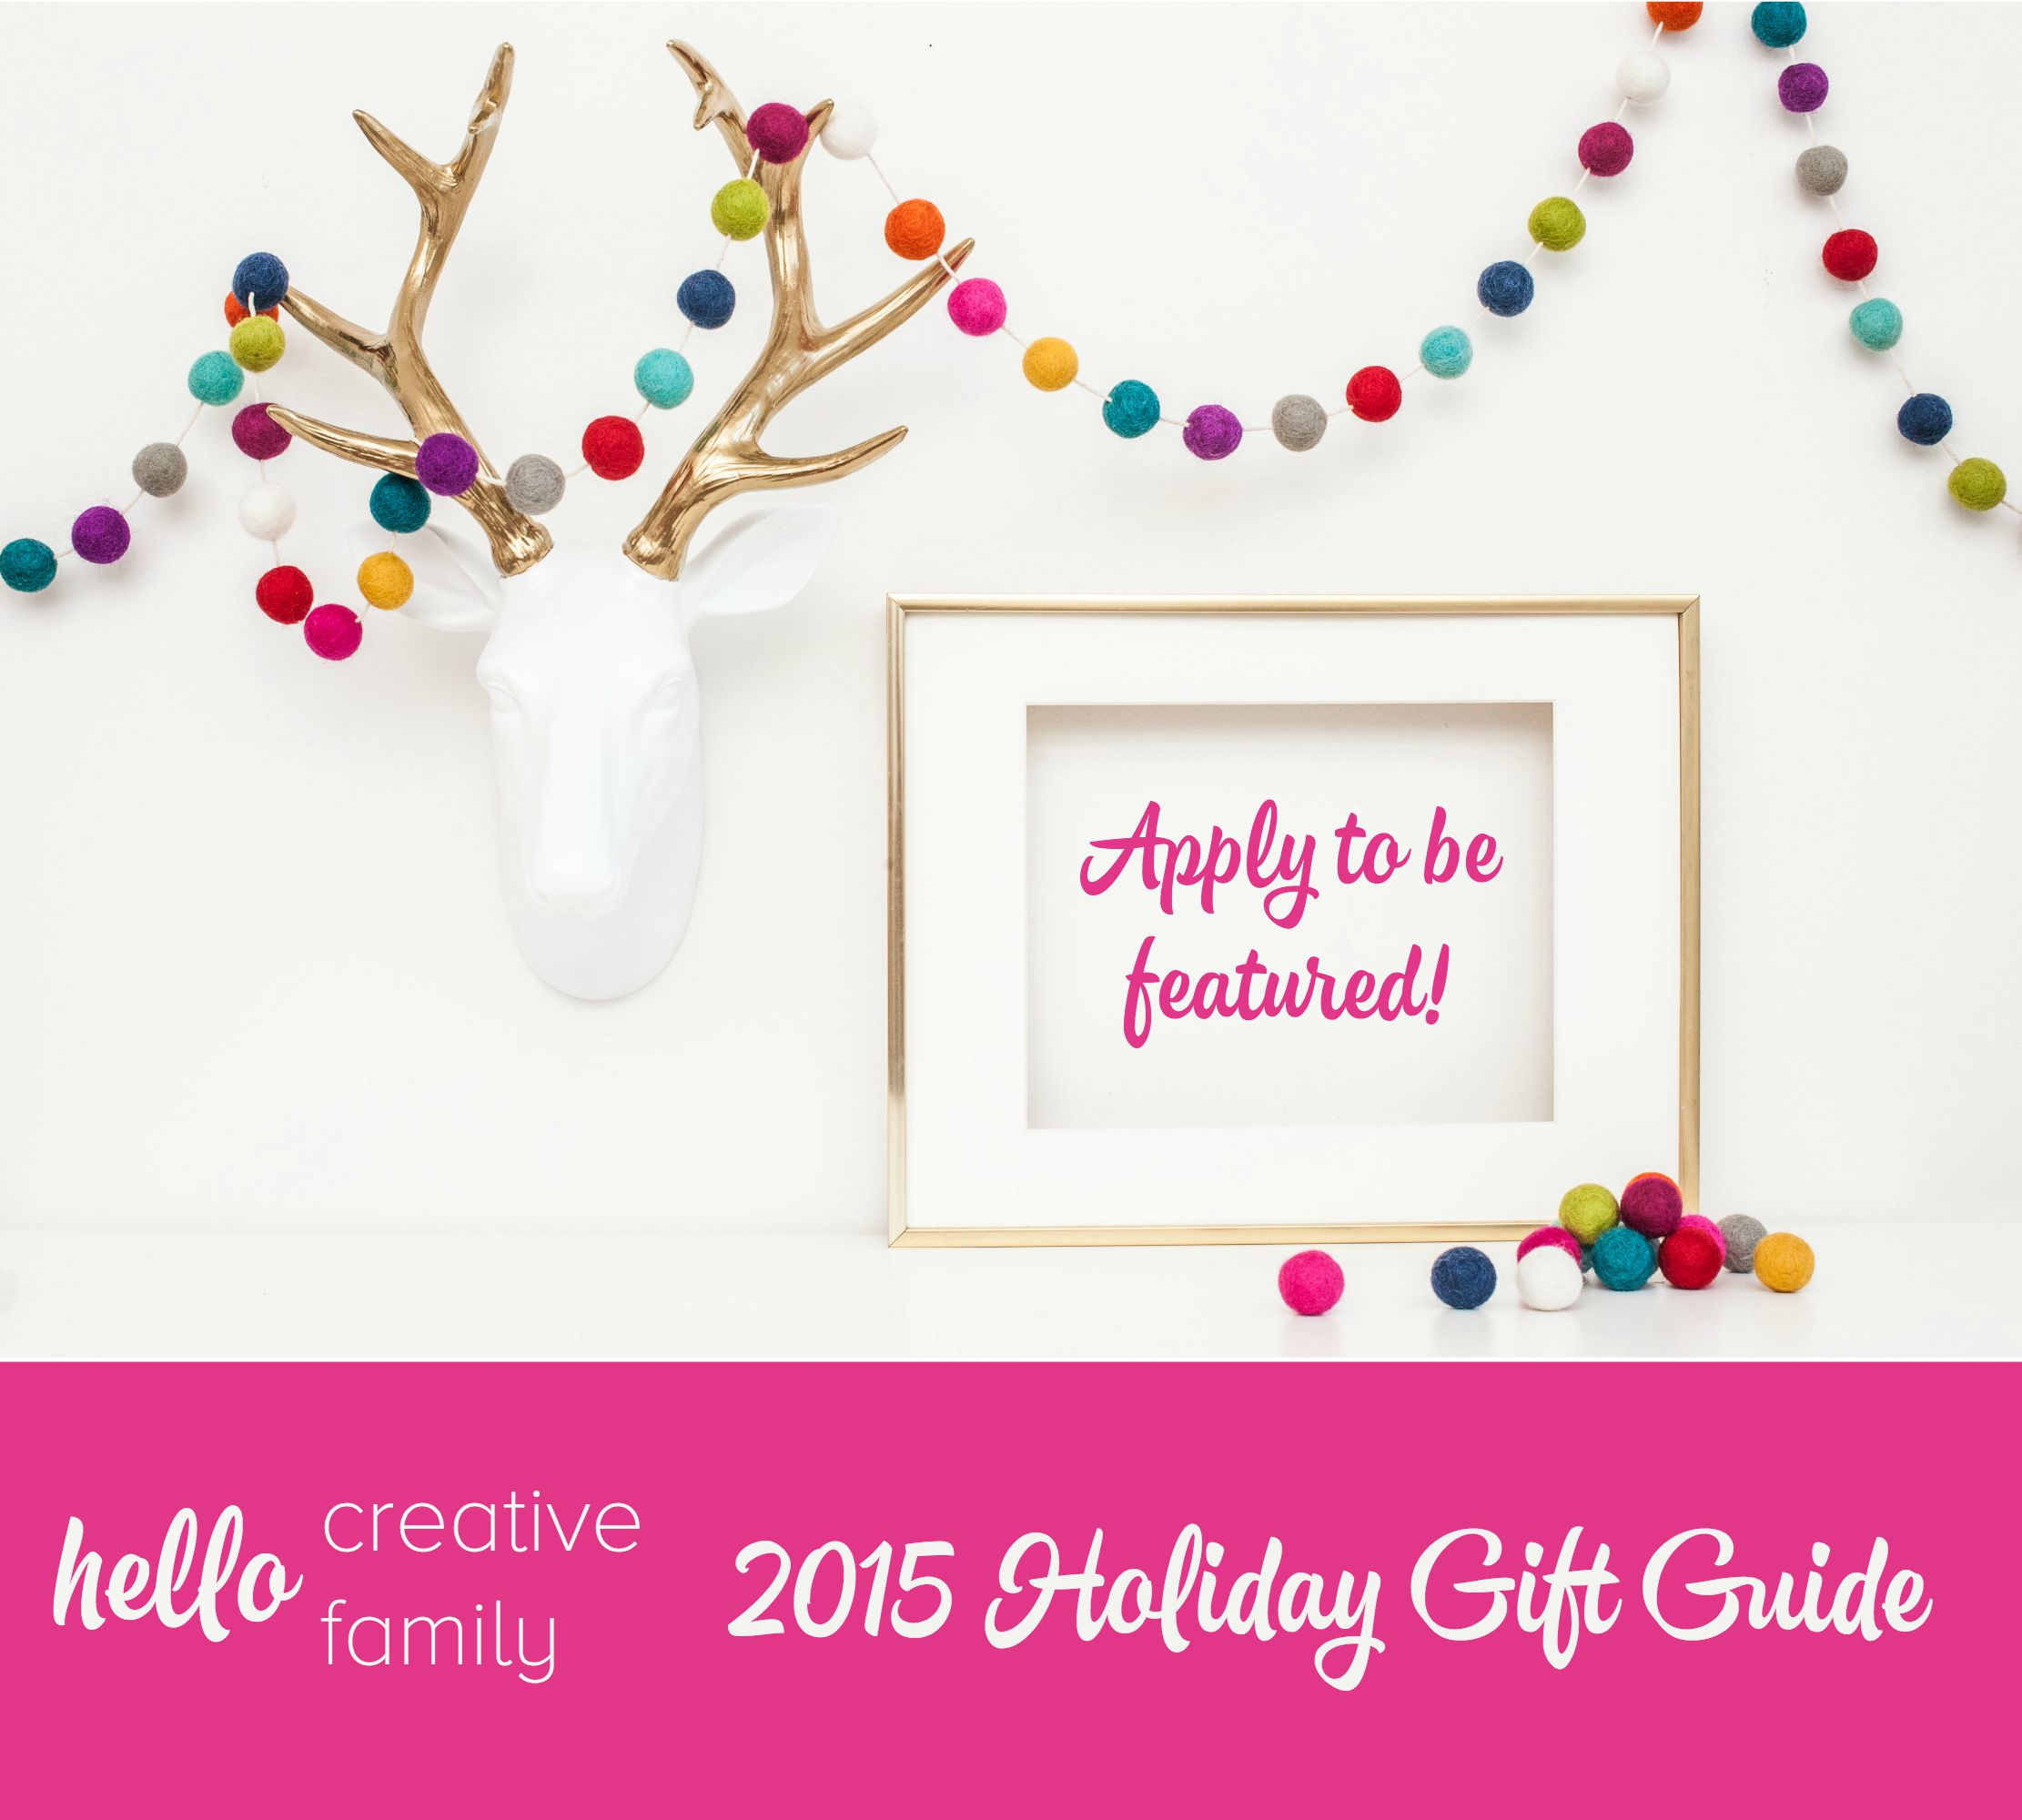 2015 Holiday Gift Guide - Hello Creative Family